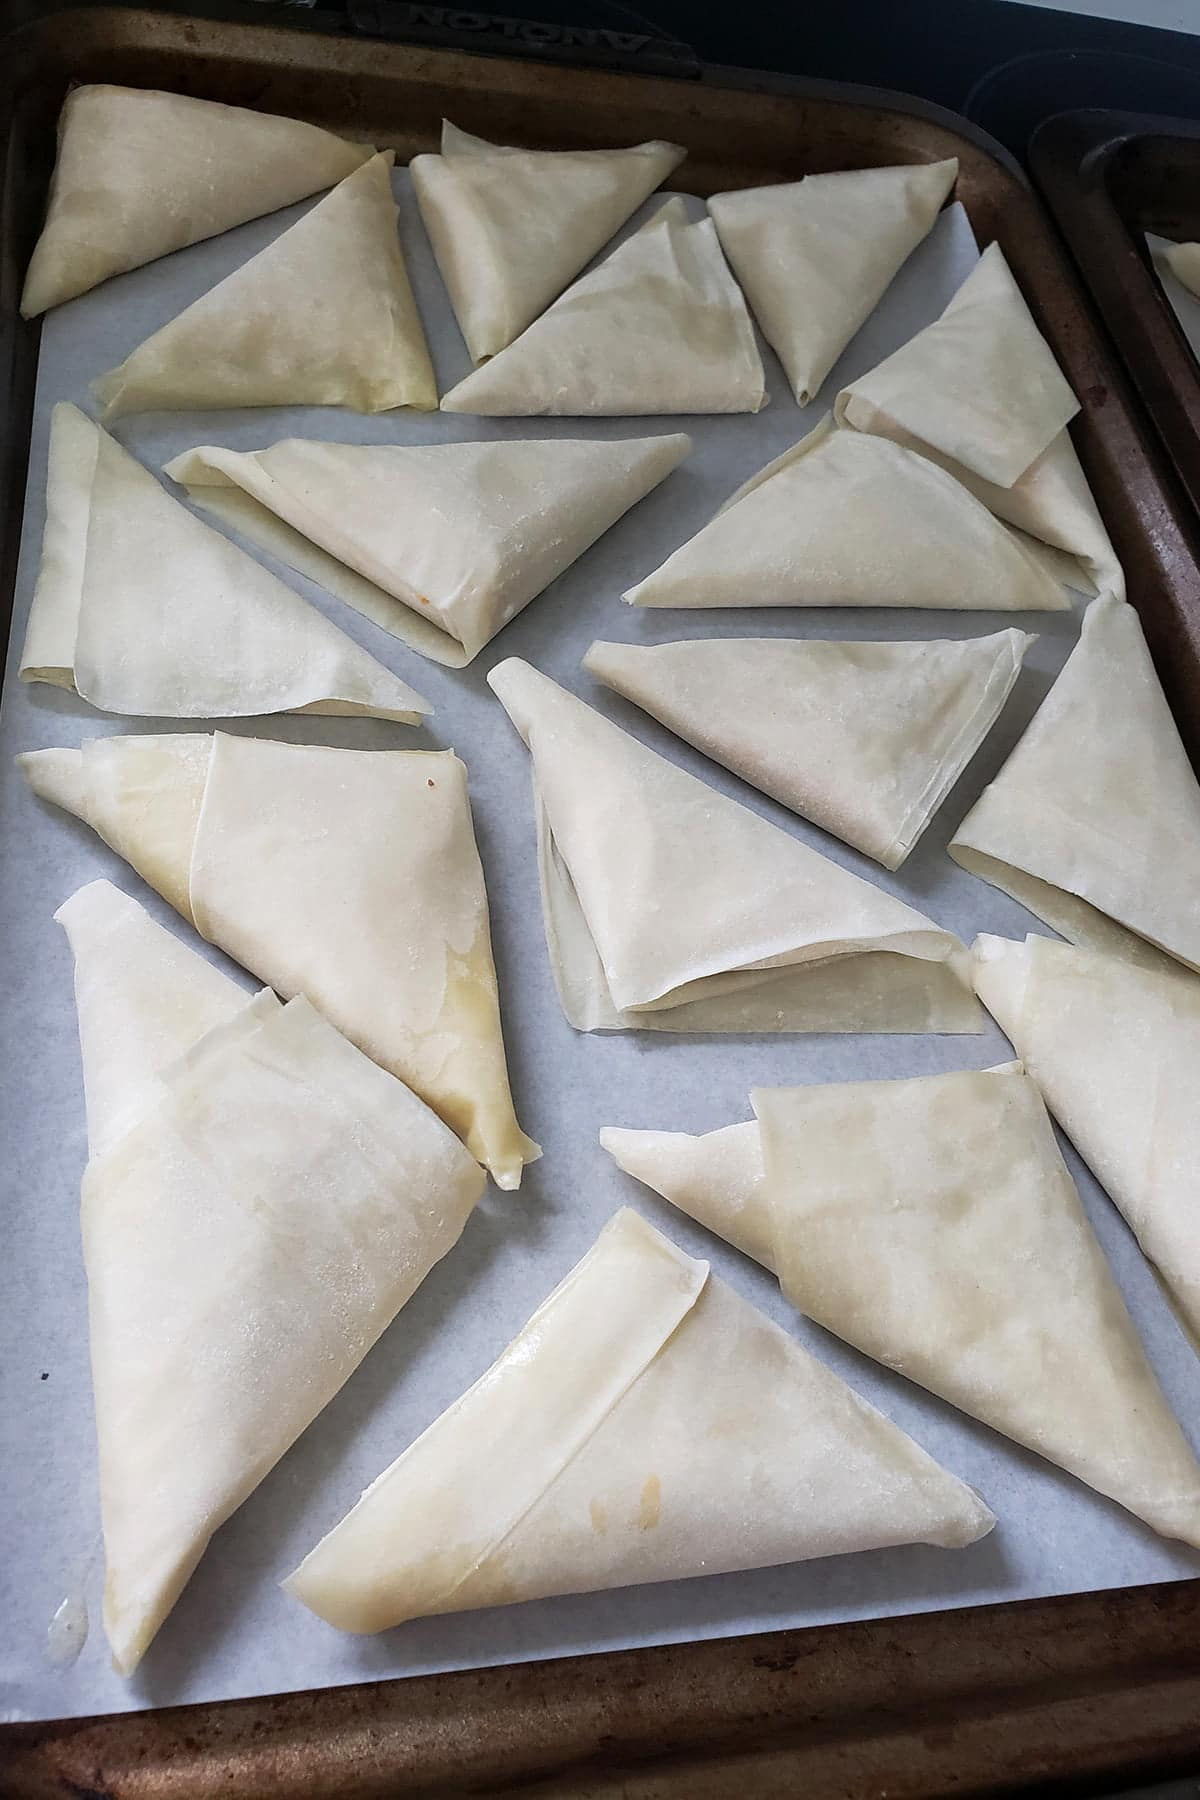 A baking sheet that is lined with parchment paper. About a dozen raw, trianglar pastries have been arranged on the pan, about to be baked.